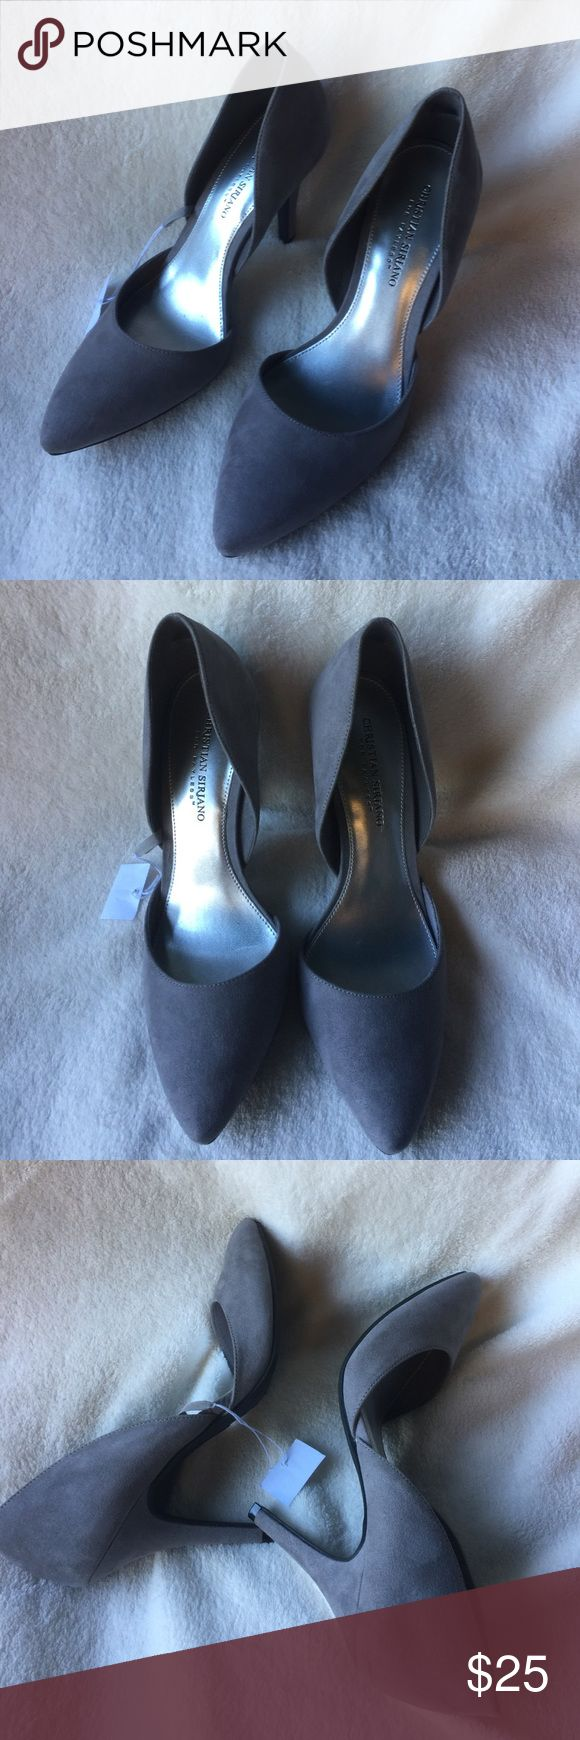 Christian Siriano Grey Pump Womens Shoes Size 8.5 Brand new, never used, size 8.5 and 3 inches heel Christian Siriano Shoes Heels